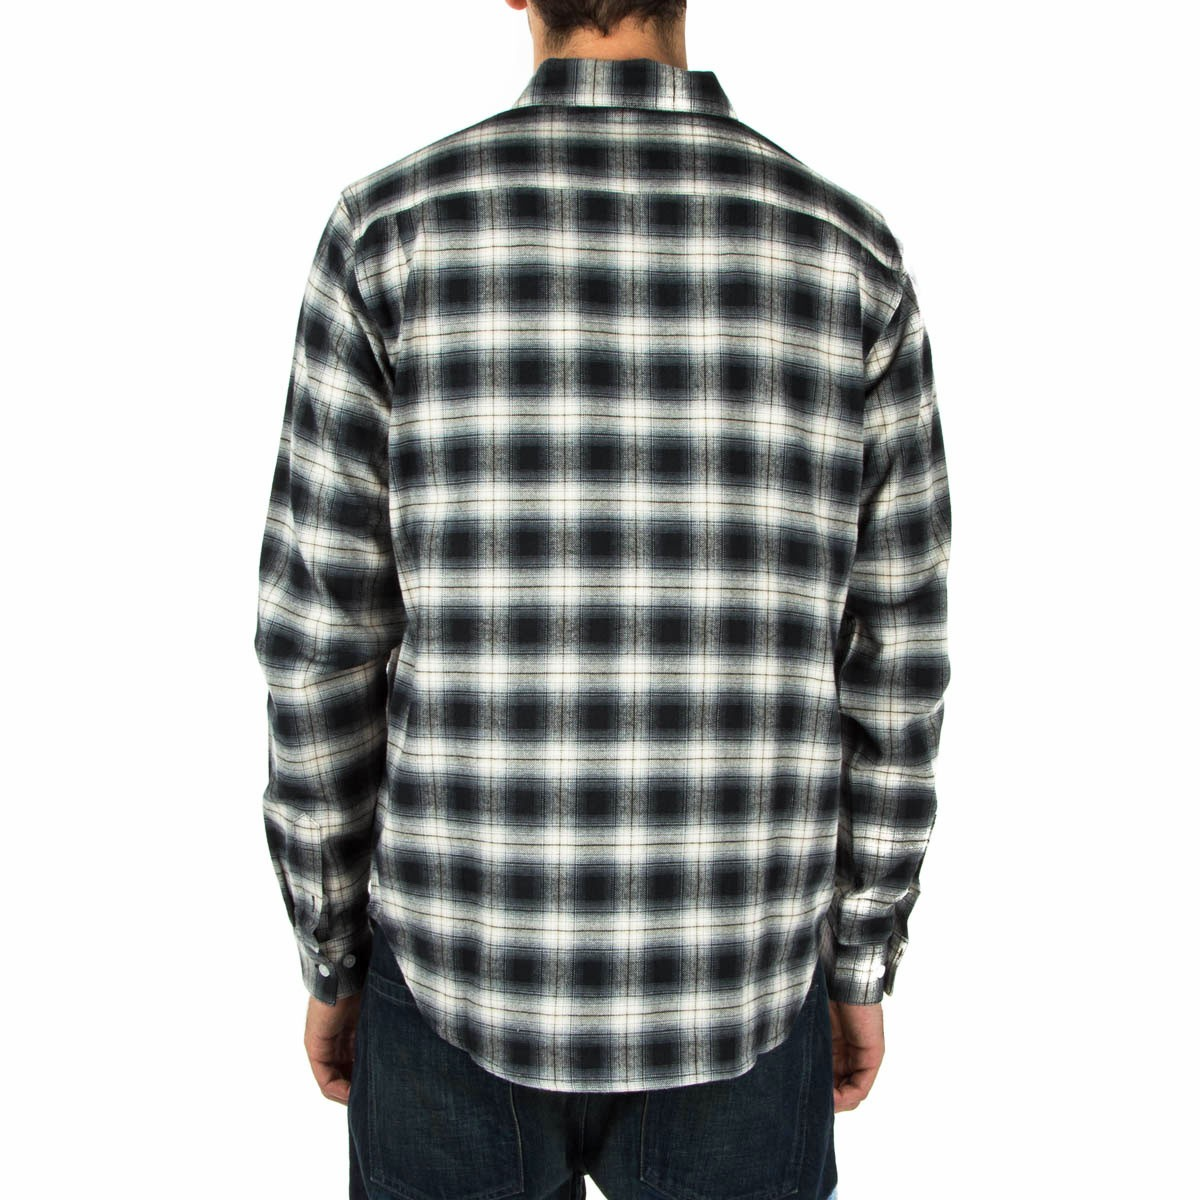 Diamond supply co ombre plaid flannel shirt black aq2f574 for Black watch plaid flannel shirt